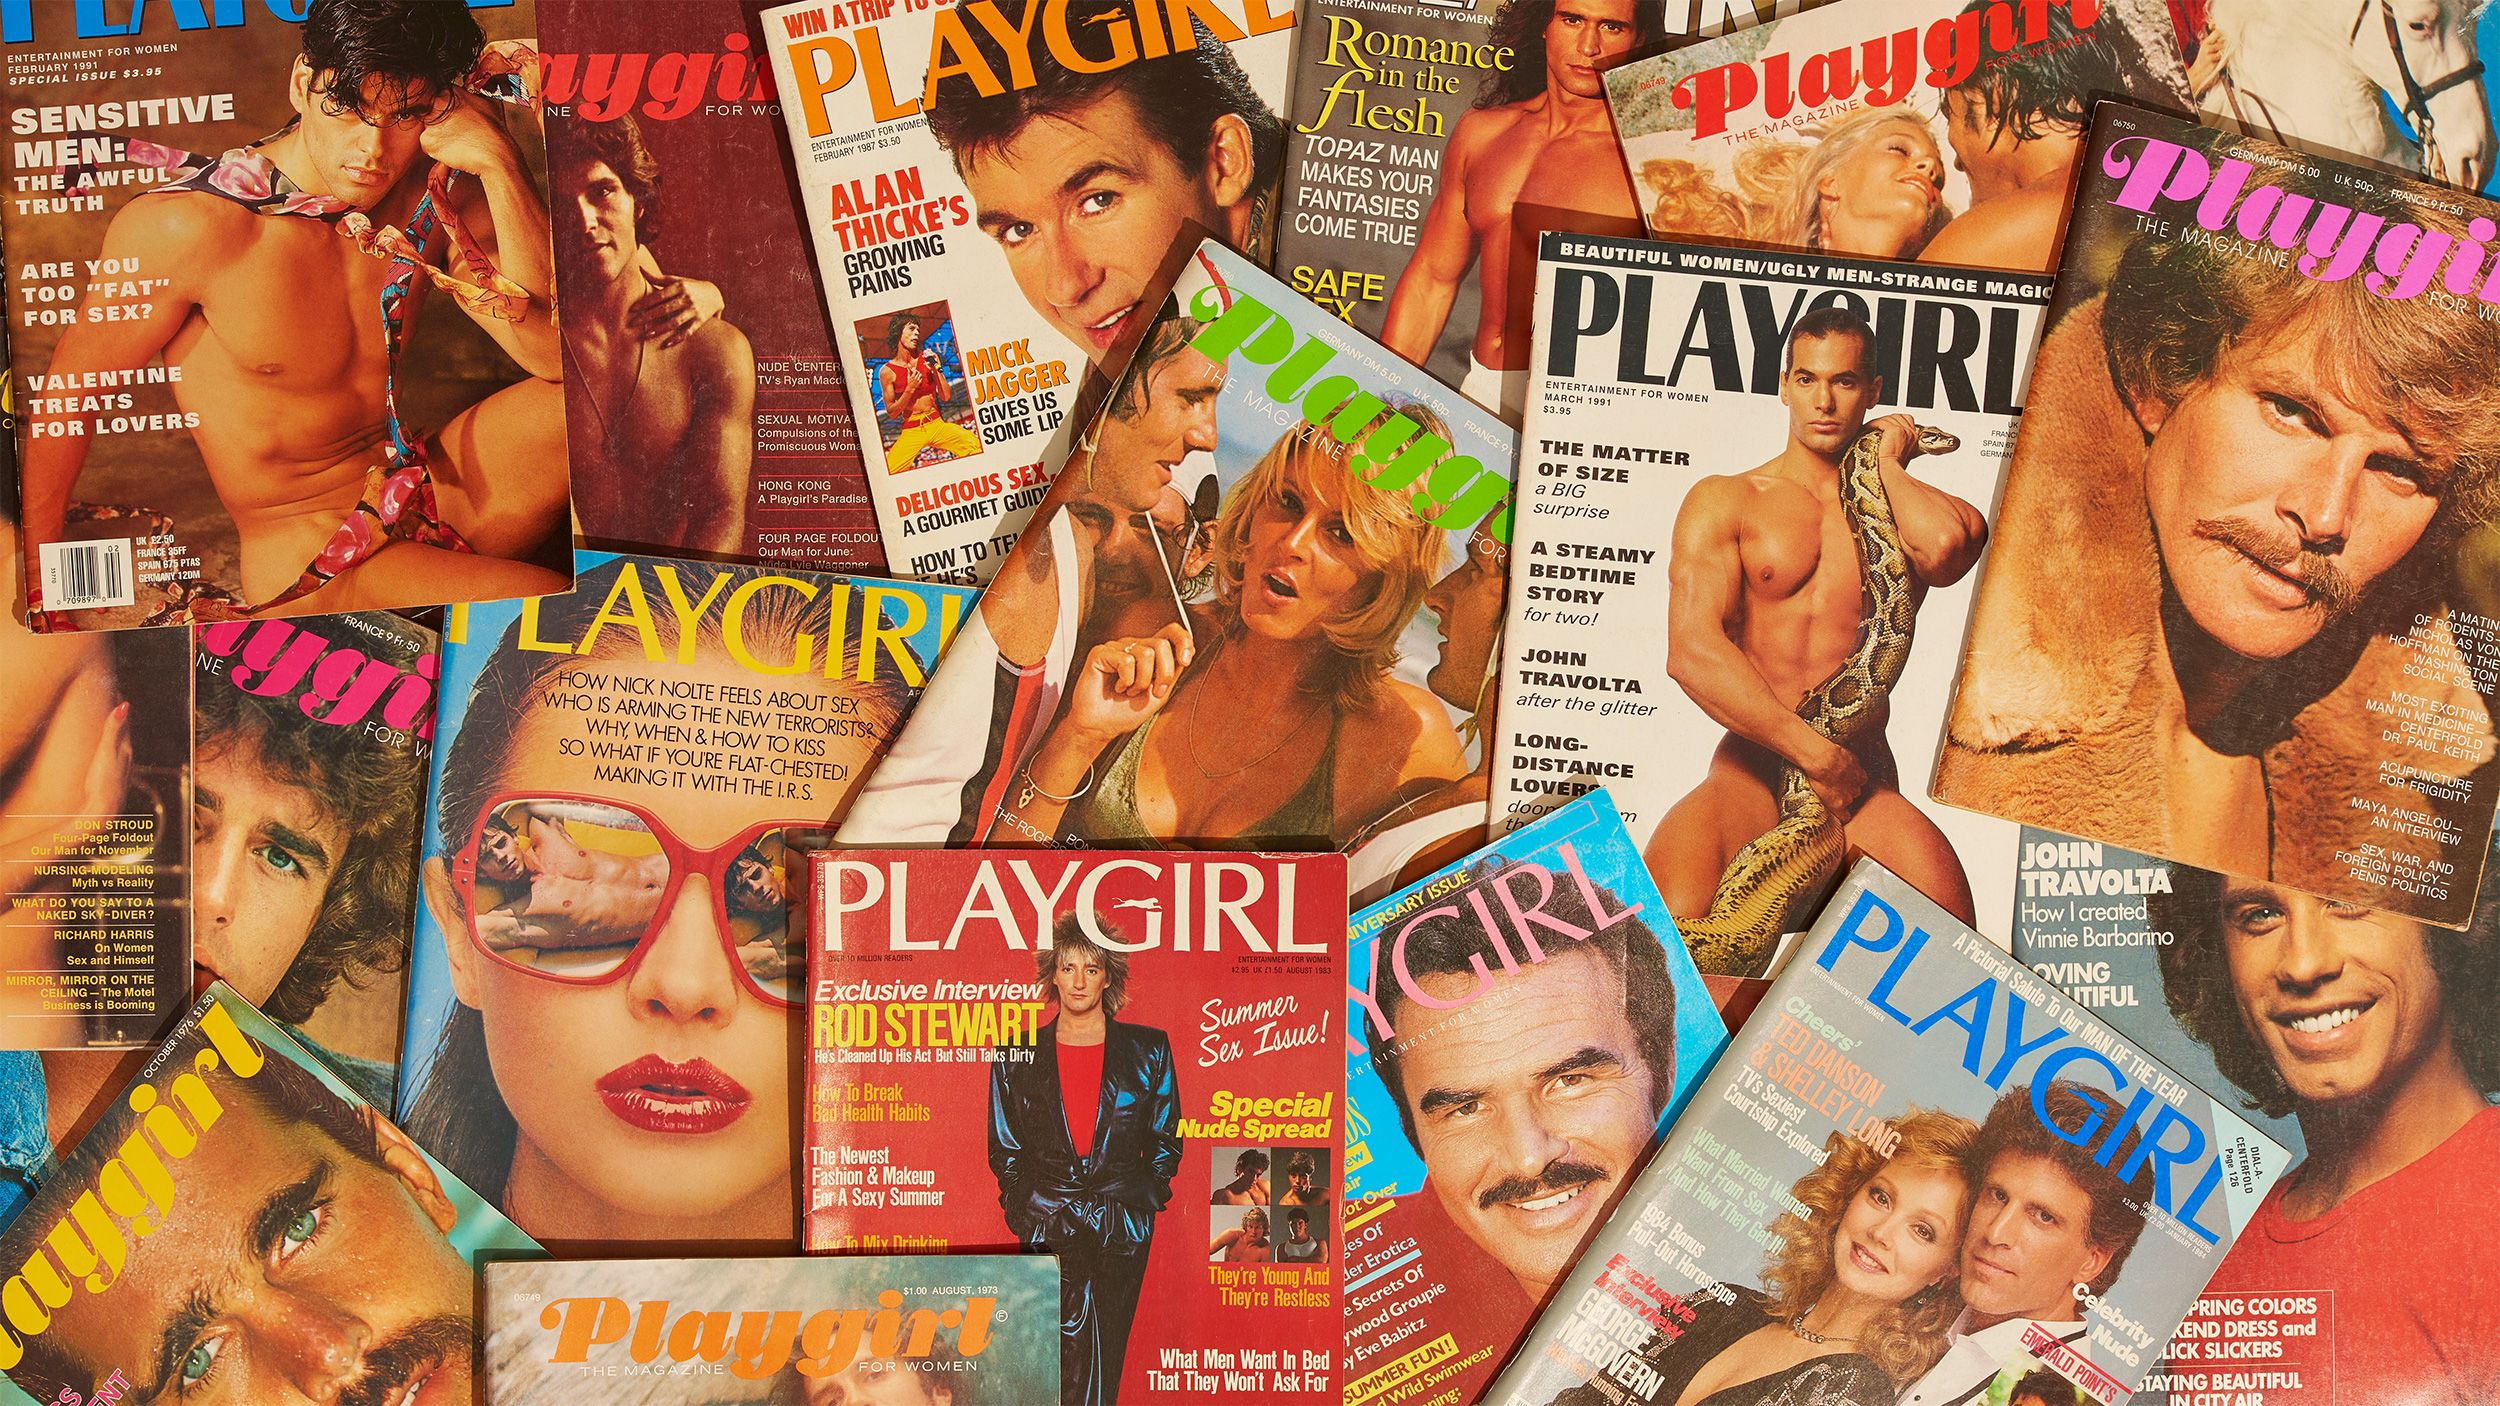 History Of Playgirl Magazine How Playgirl Normalized Male Nudity